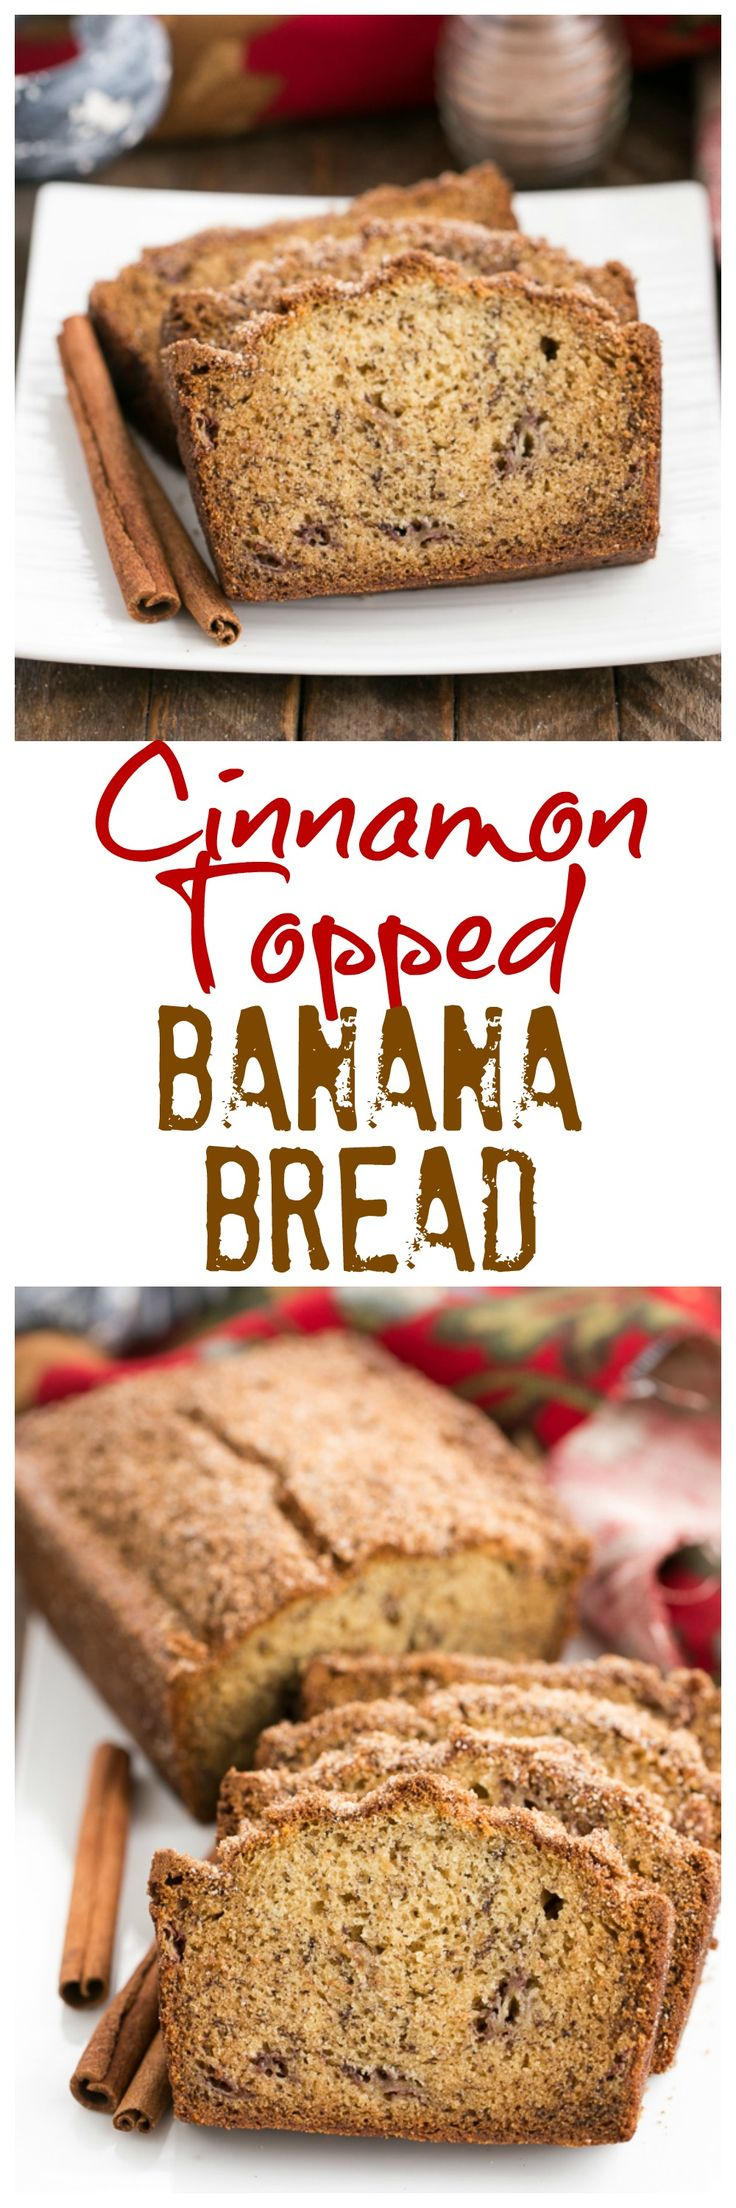 When you need a little something sweet for breakfast, a thick slice of this Cinnamon Topped Banana Bread will do the trick! @lizzydo